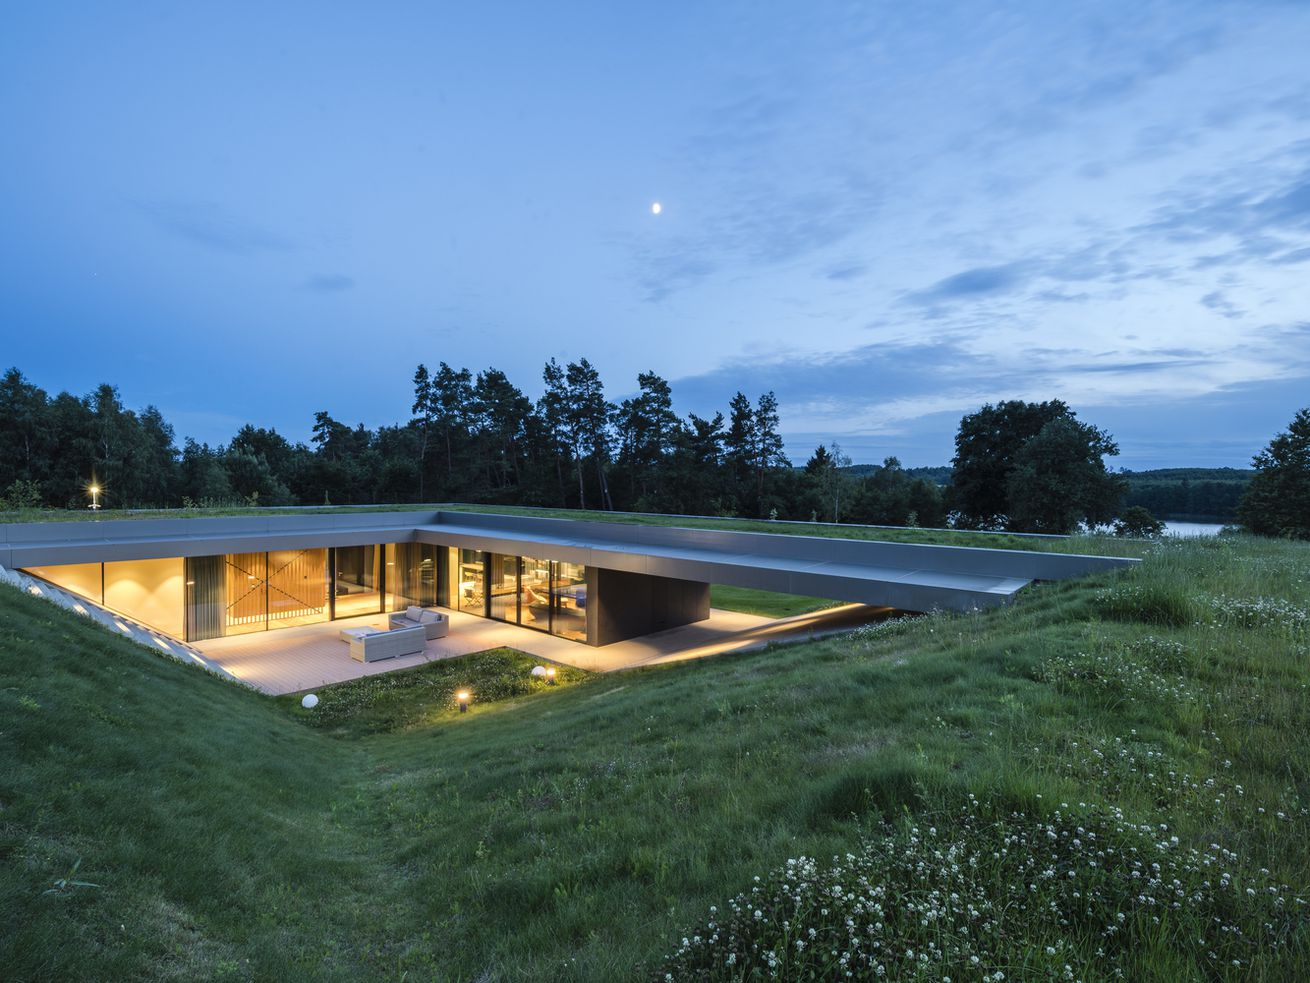 At the center of a grassy landscape is a sunken courtyard, which leads to glass walls enclosing living spaces lit up during dusk.